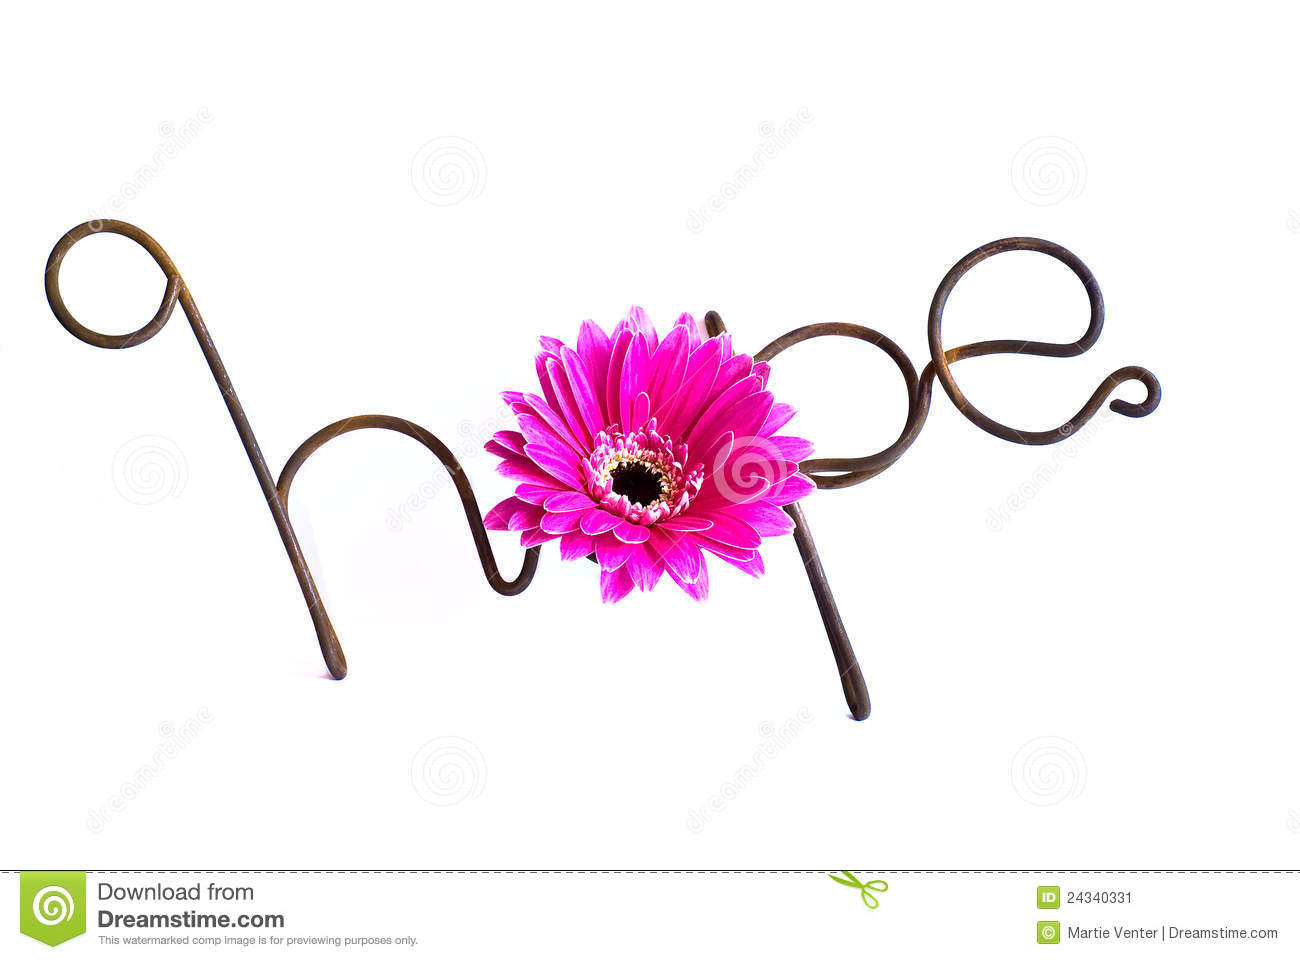 The word Hope fashioned from rusted wire, with a bright pink gerber ...